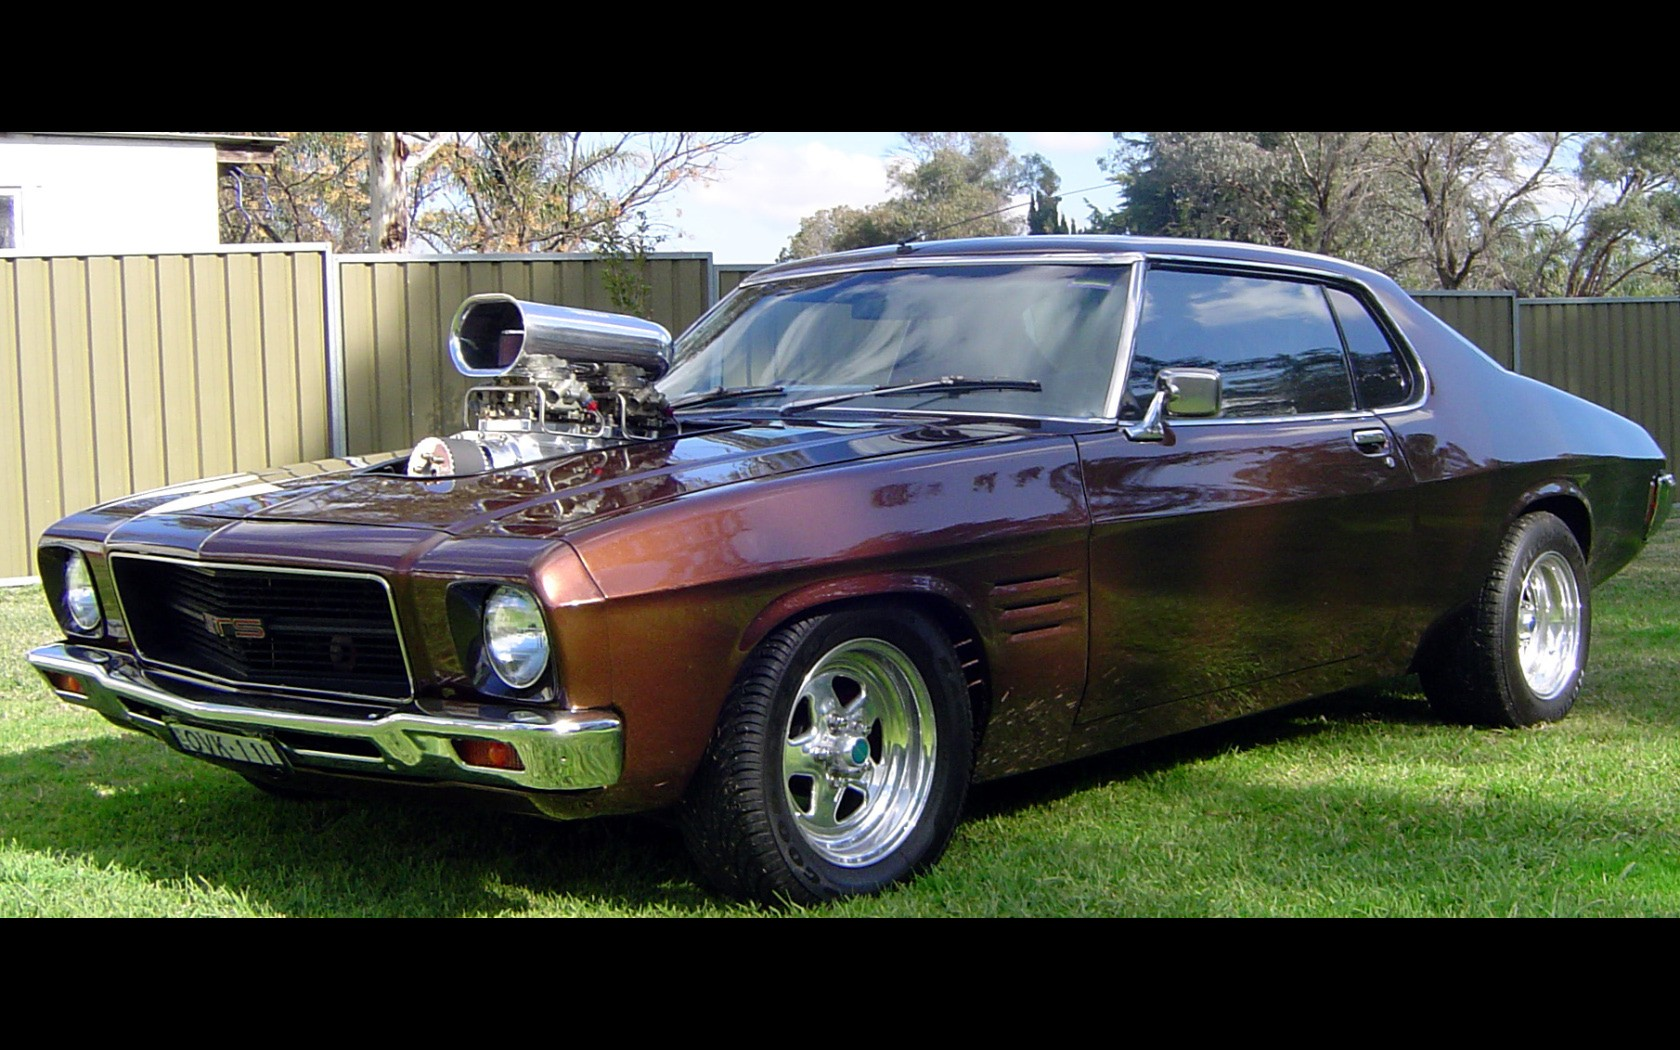 4k Wallpaper Muscle Car Car Muscle Cars Holden Holden Monaro Wallpapers Hd